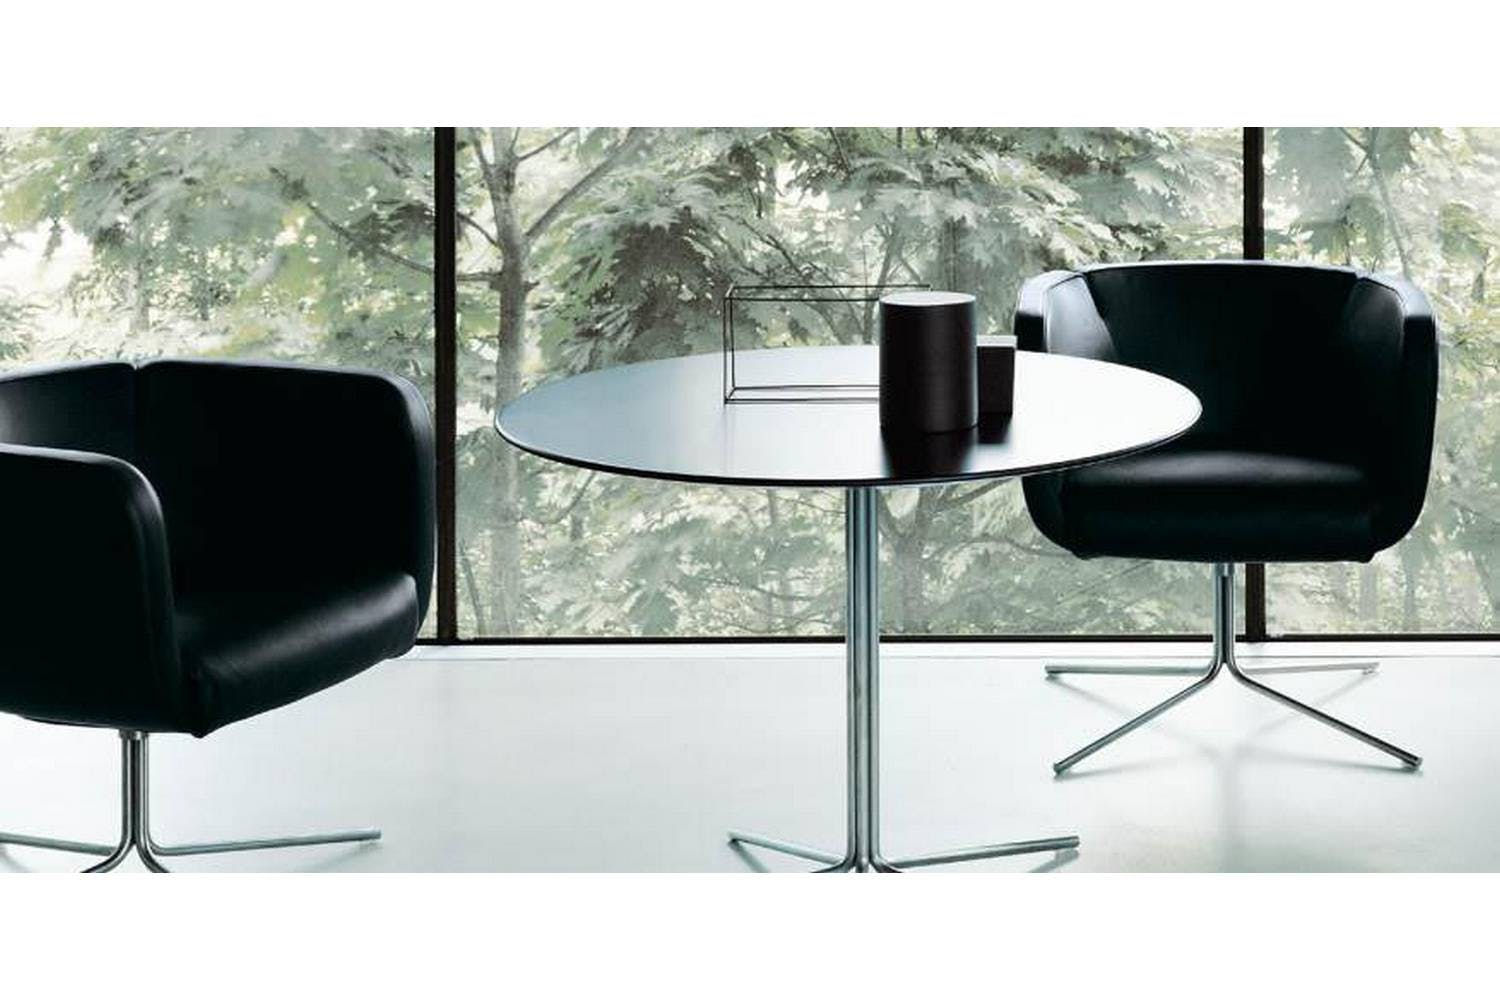 Jelly Table By Piero Lissoni For Living Divani